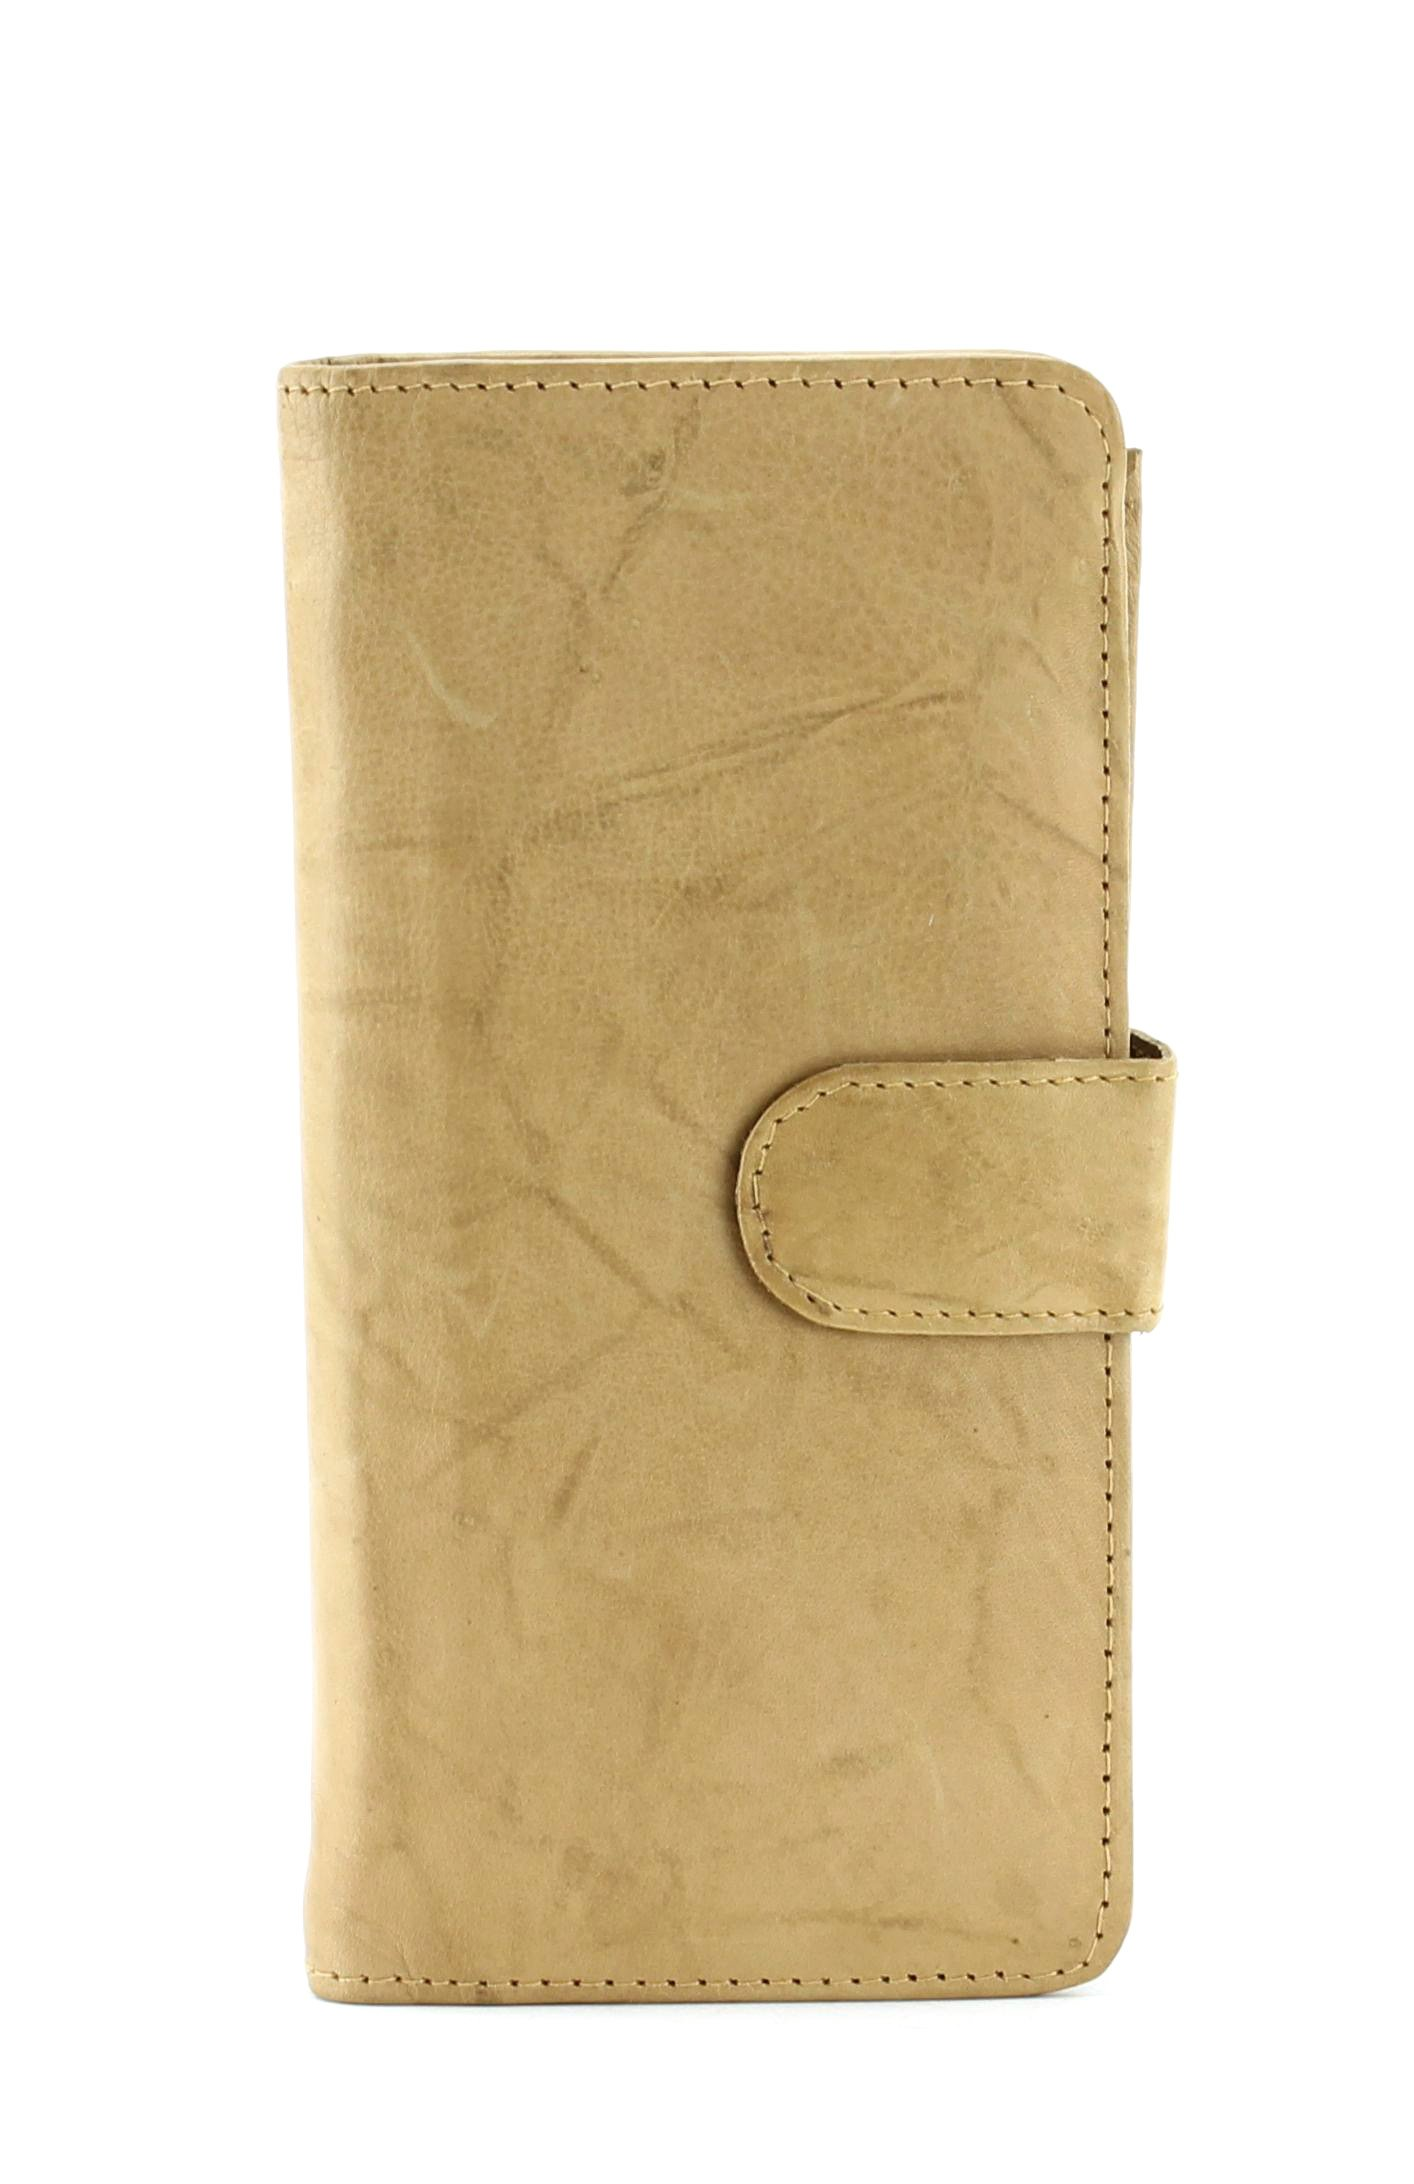 Bacci Top Grain Cowhide Voyager slim brest Jacket Wallet With Check Book Cover